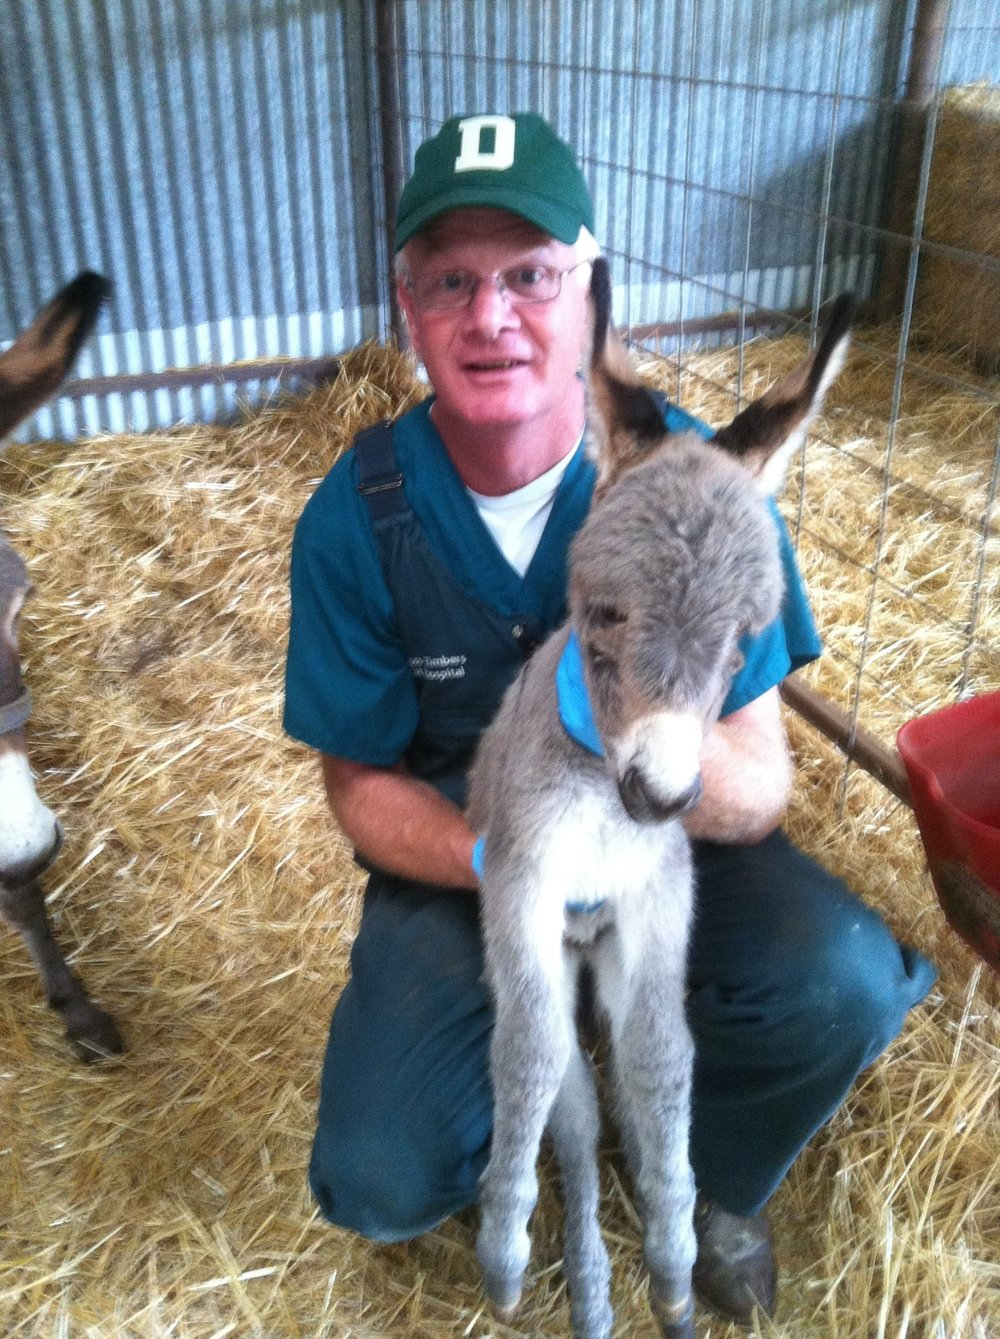 Dr. Arn Anderson working on a miniature donkey foal.